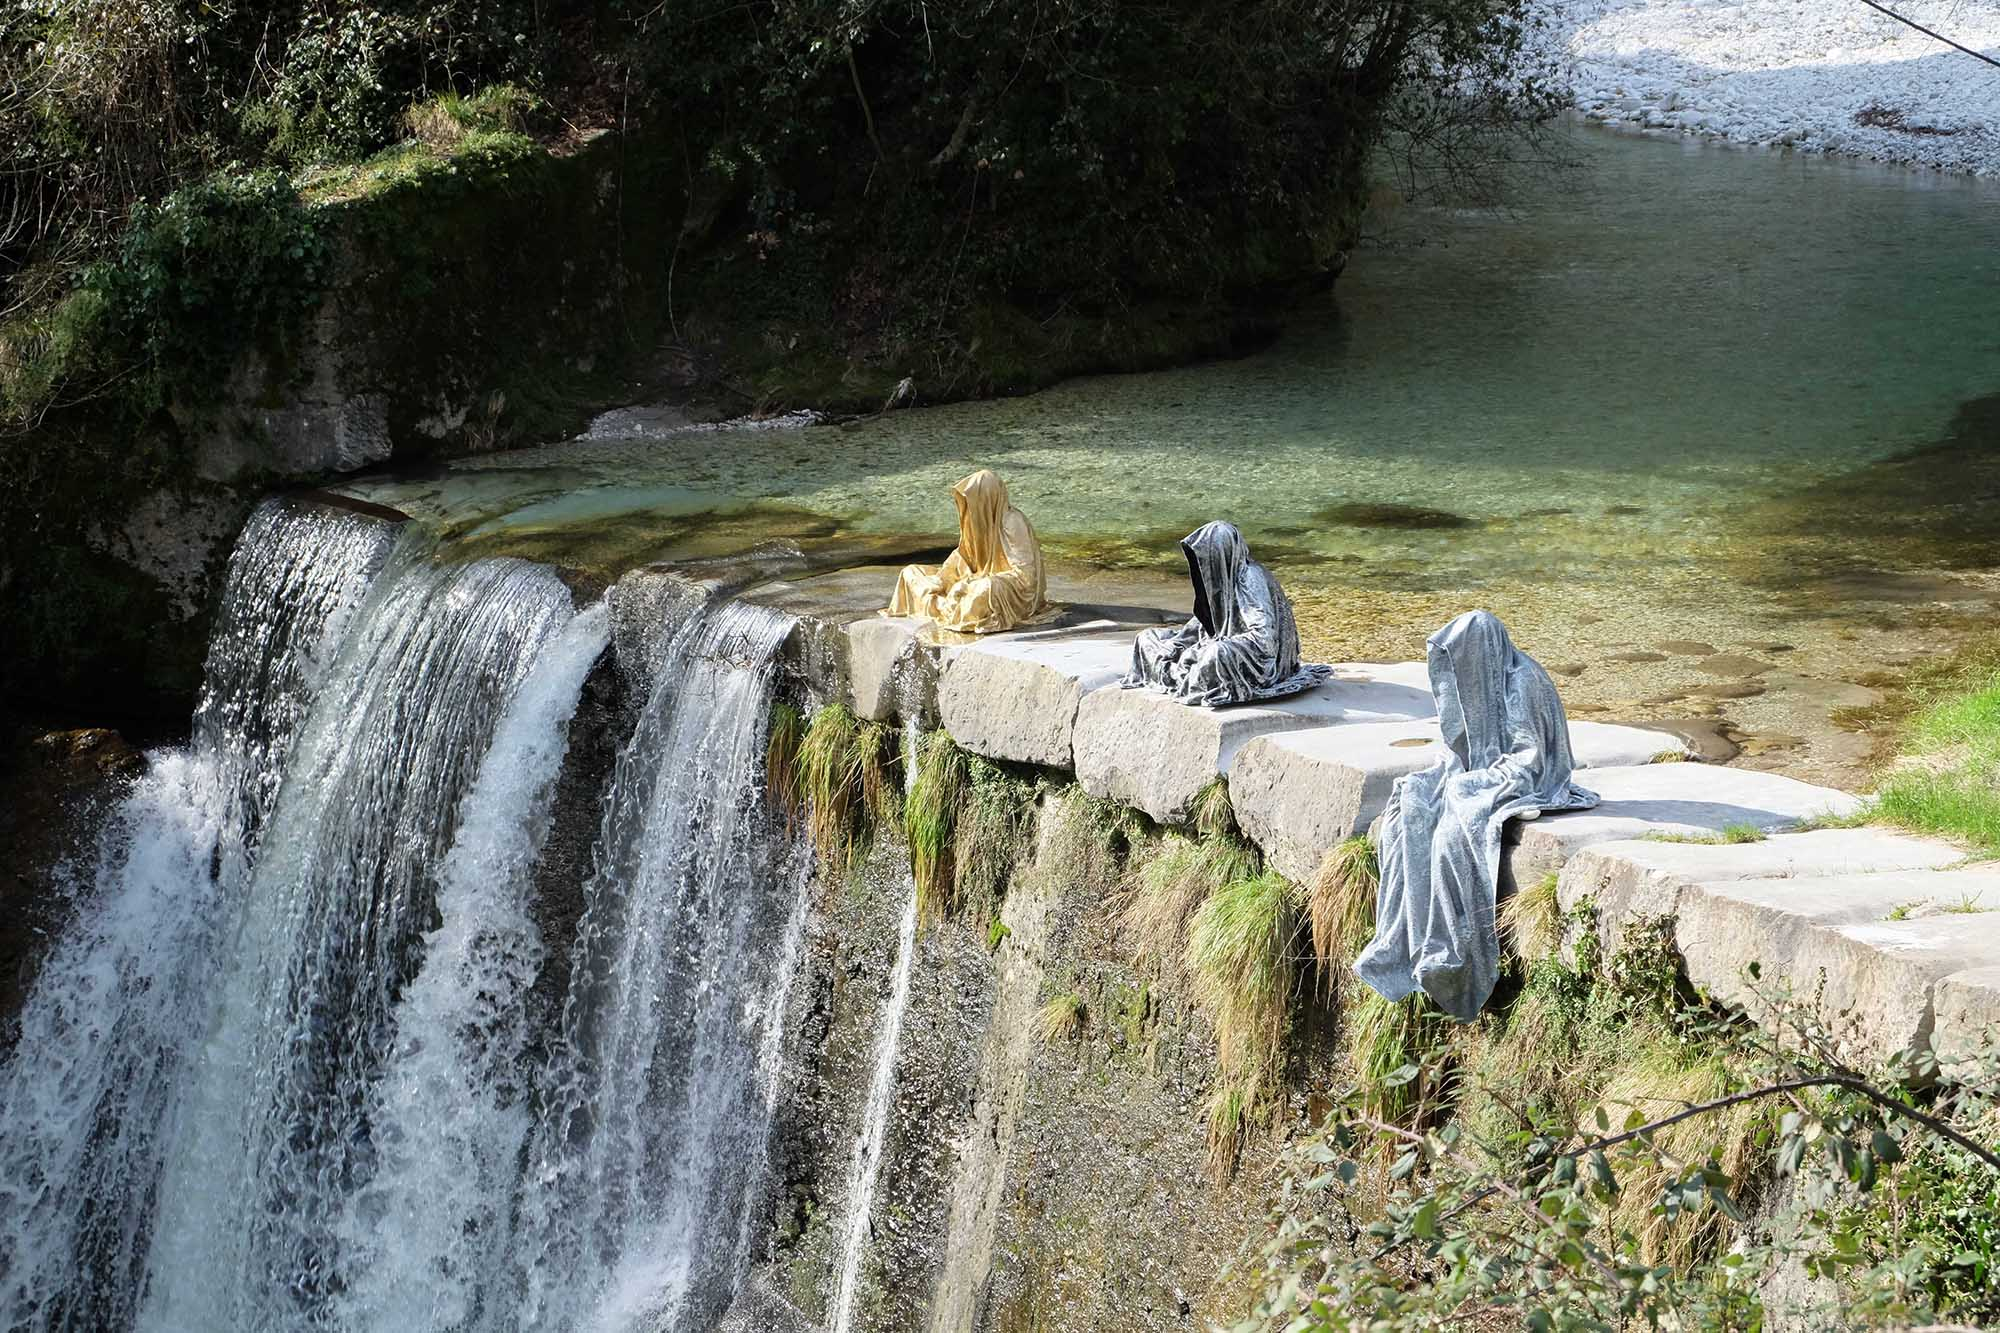 guardians of time manfred kili kielnhofer modern sculpture contemporary fine art design arts statue faceless religion stone marble carrara 1546